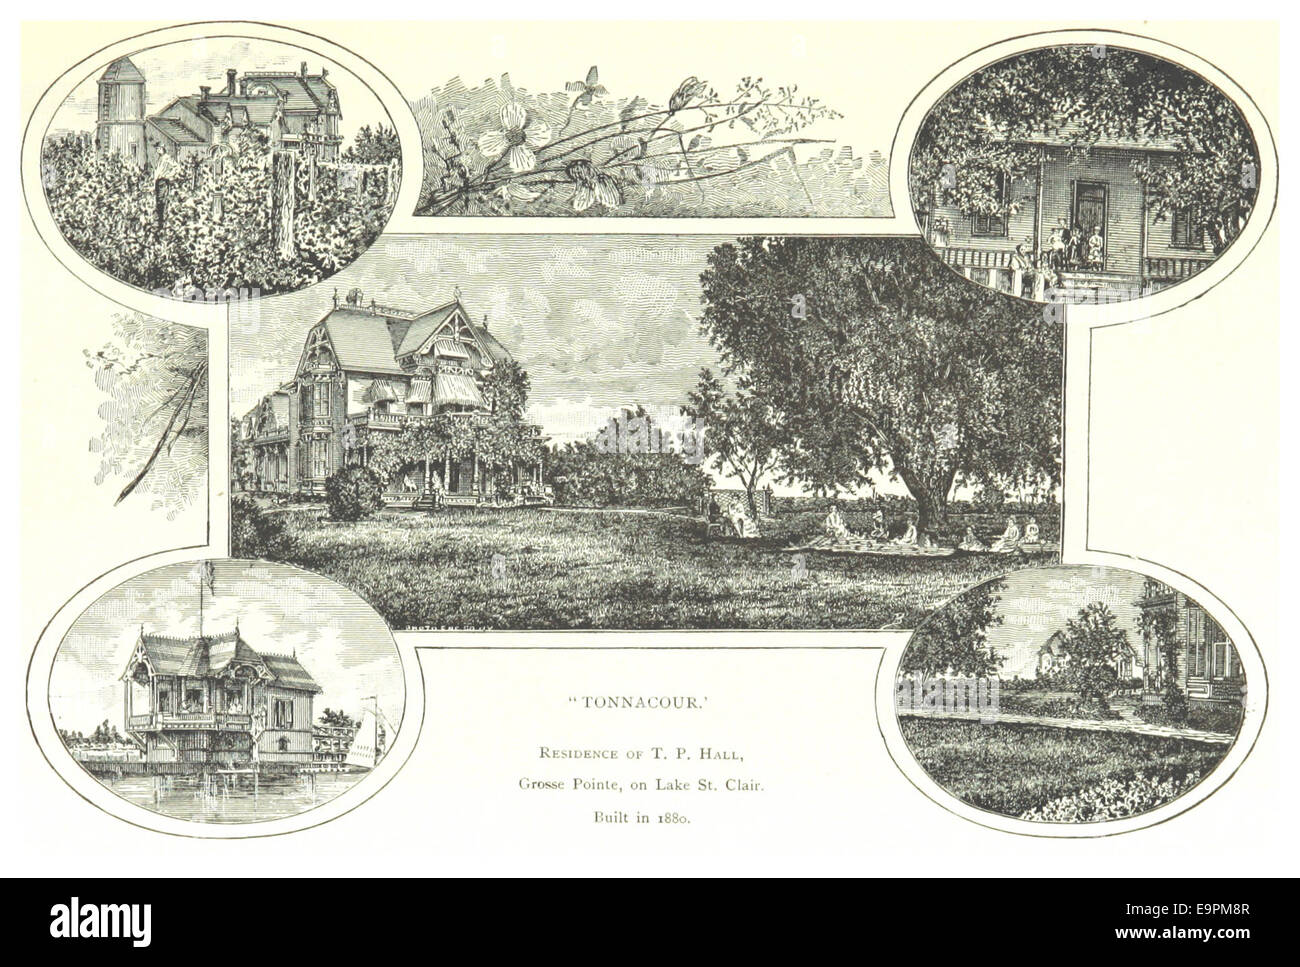 FARMER(1884) Detroit, p505 TONNACOUR - THE RESIDENCE OF T.P. HALL, GROSSE POINTE, ON LAKE ST. CLAIR. BUILT IN 1880 - Stock Image